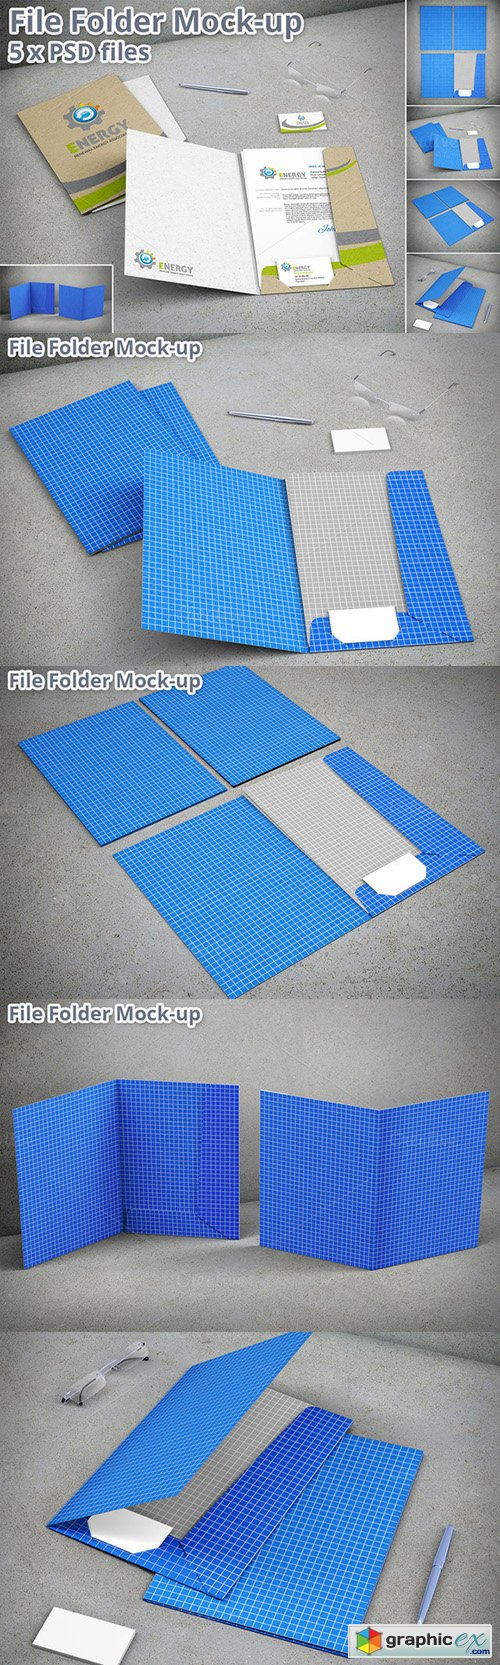 Stationary File Folder Mockup 5xPSD